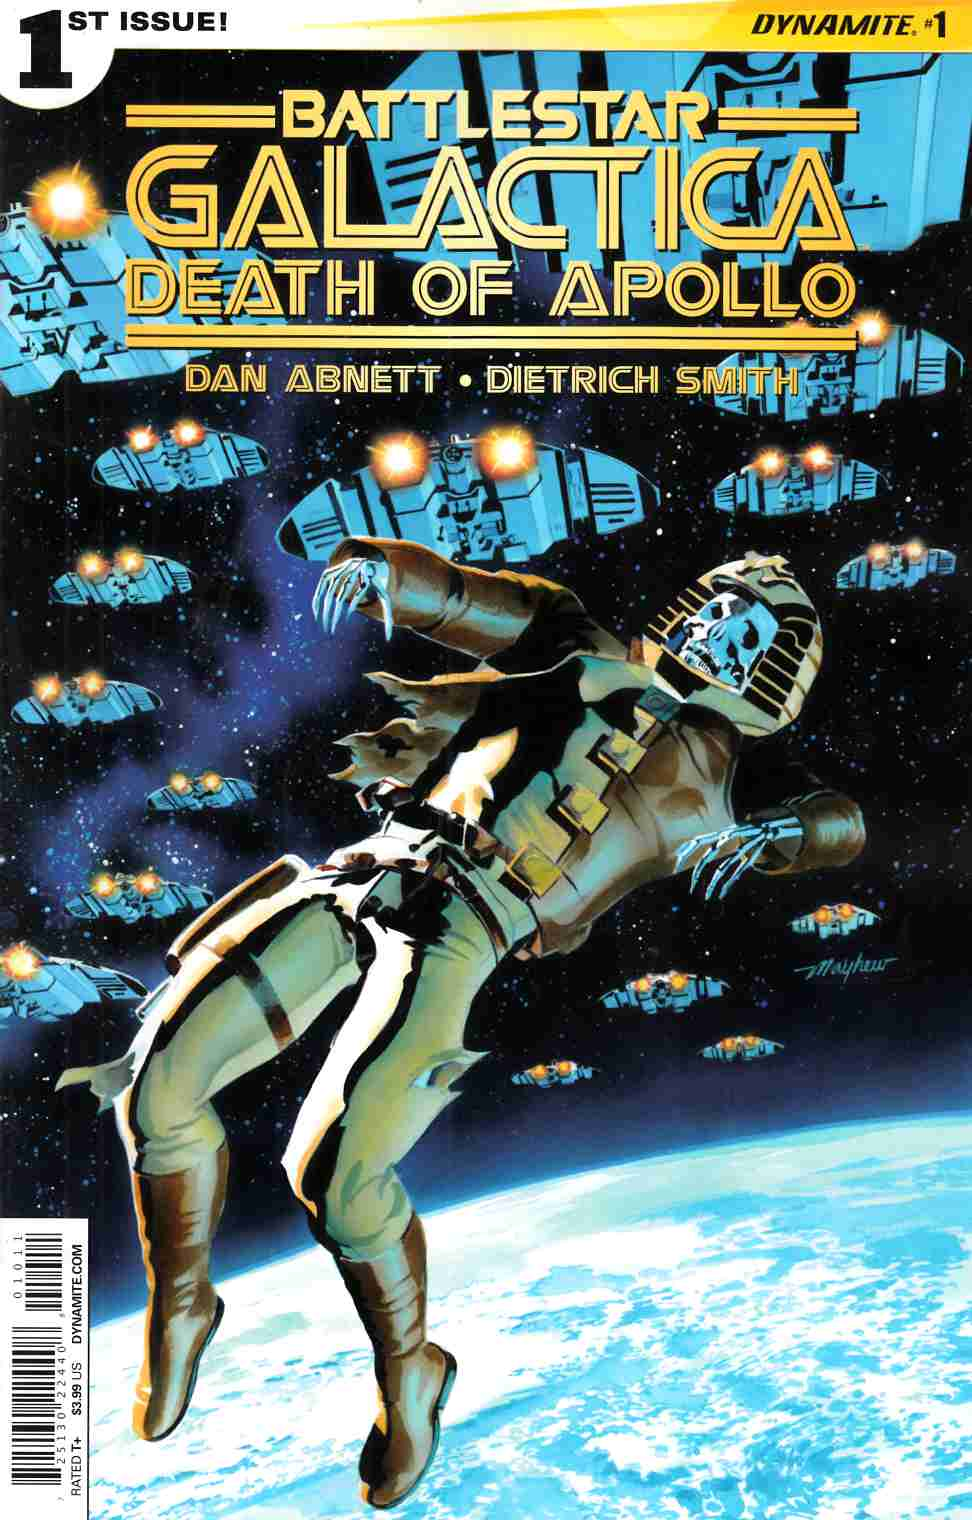 Battlestar Galactica Death of Apollo #1 Cover A- Mayhew [Dynamite Comic]